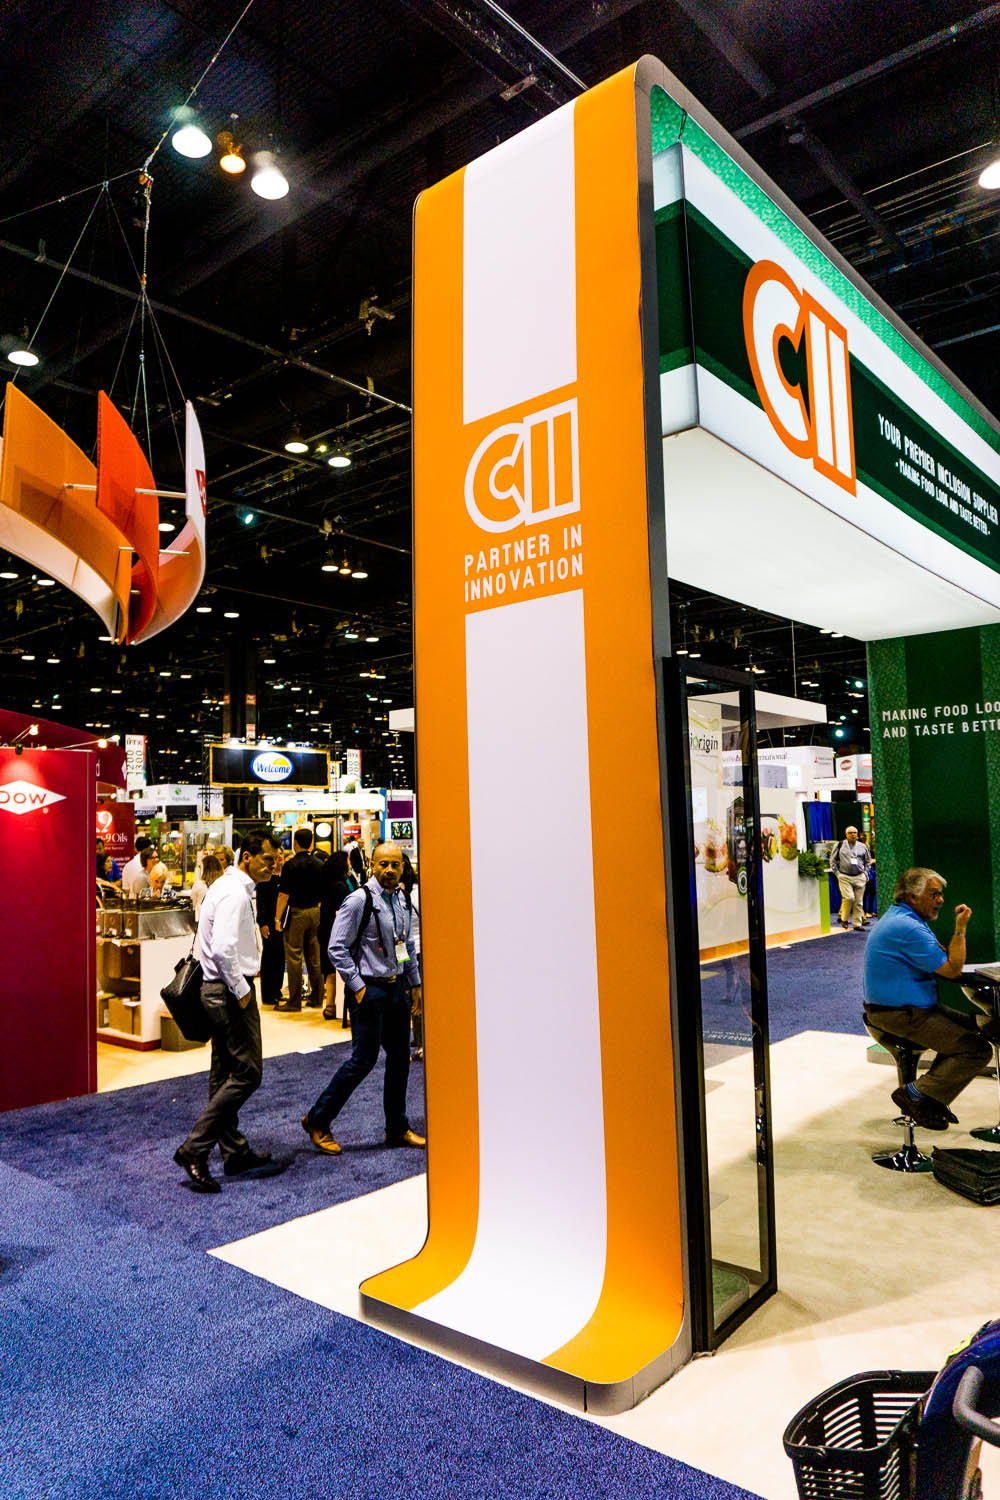 Nj Trade Show Booth : Booth design ideas